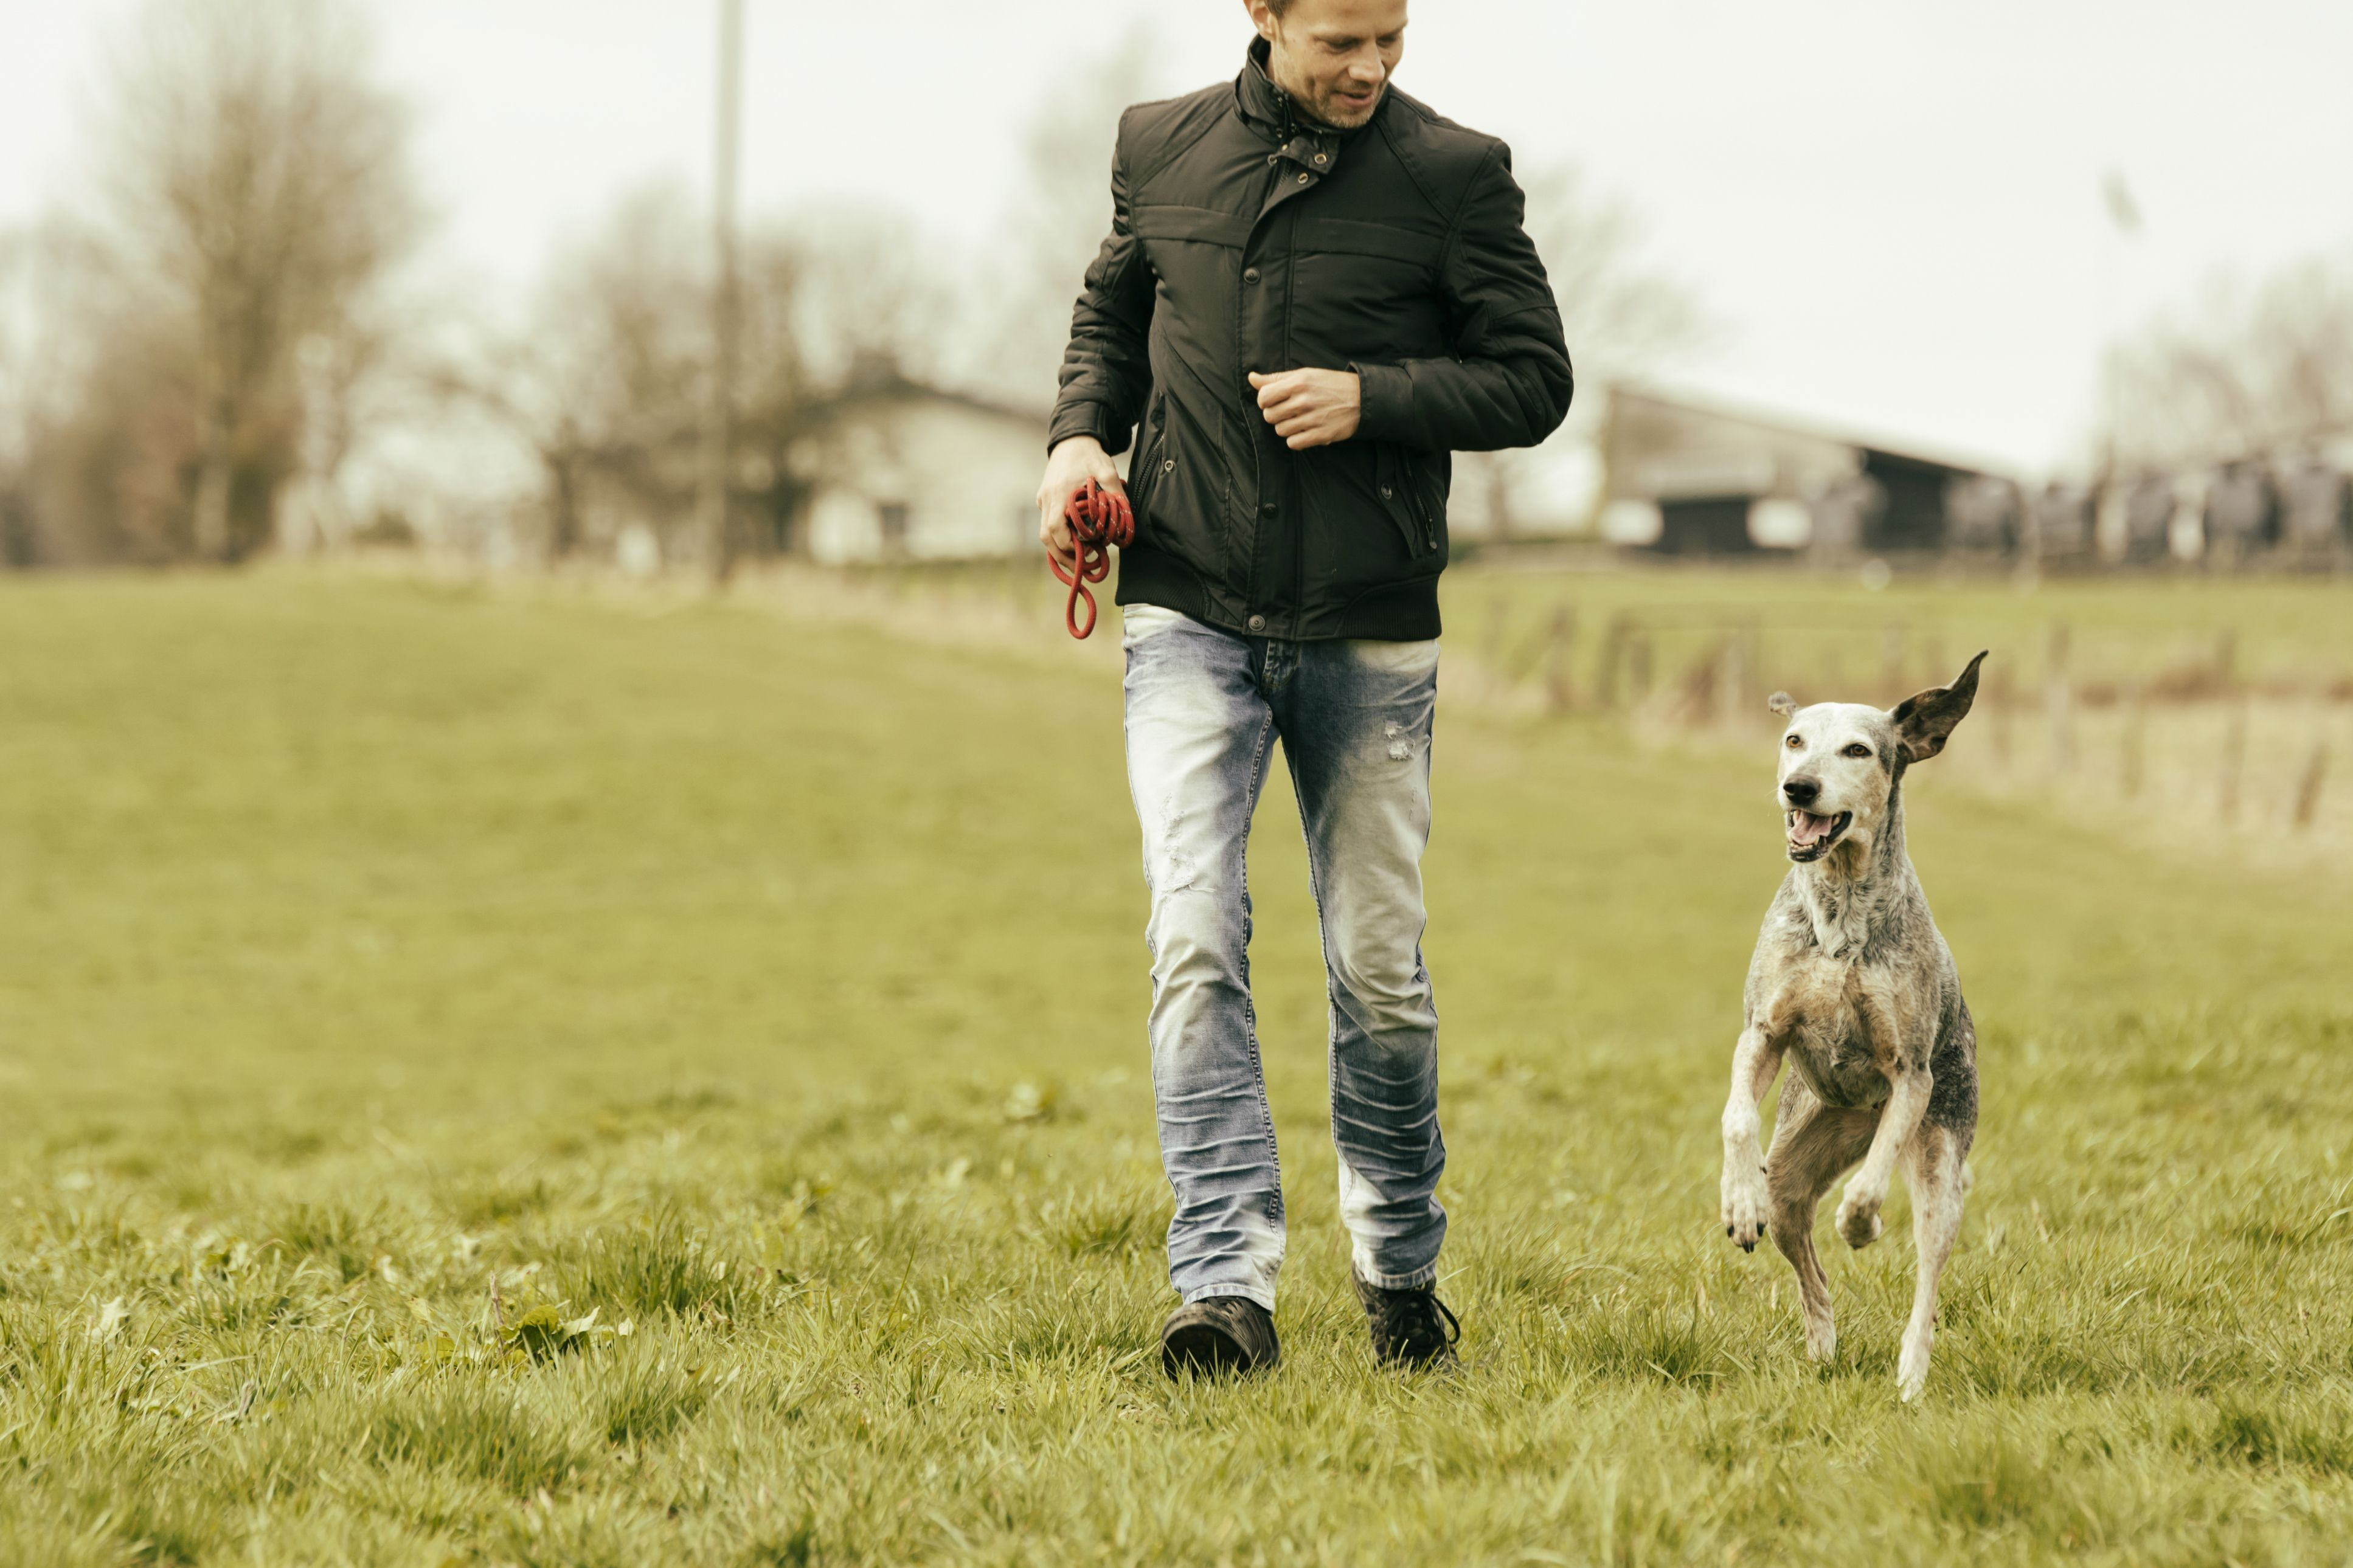 The 7 Best Dog Training Books to Buy in 2019